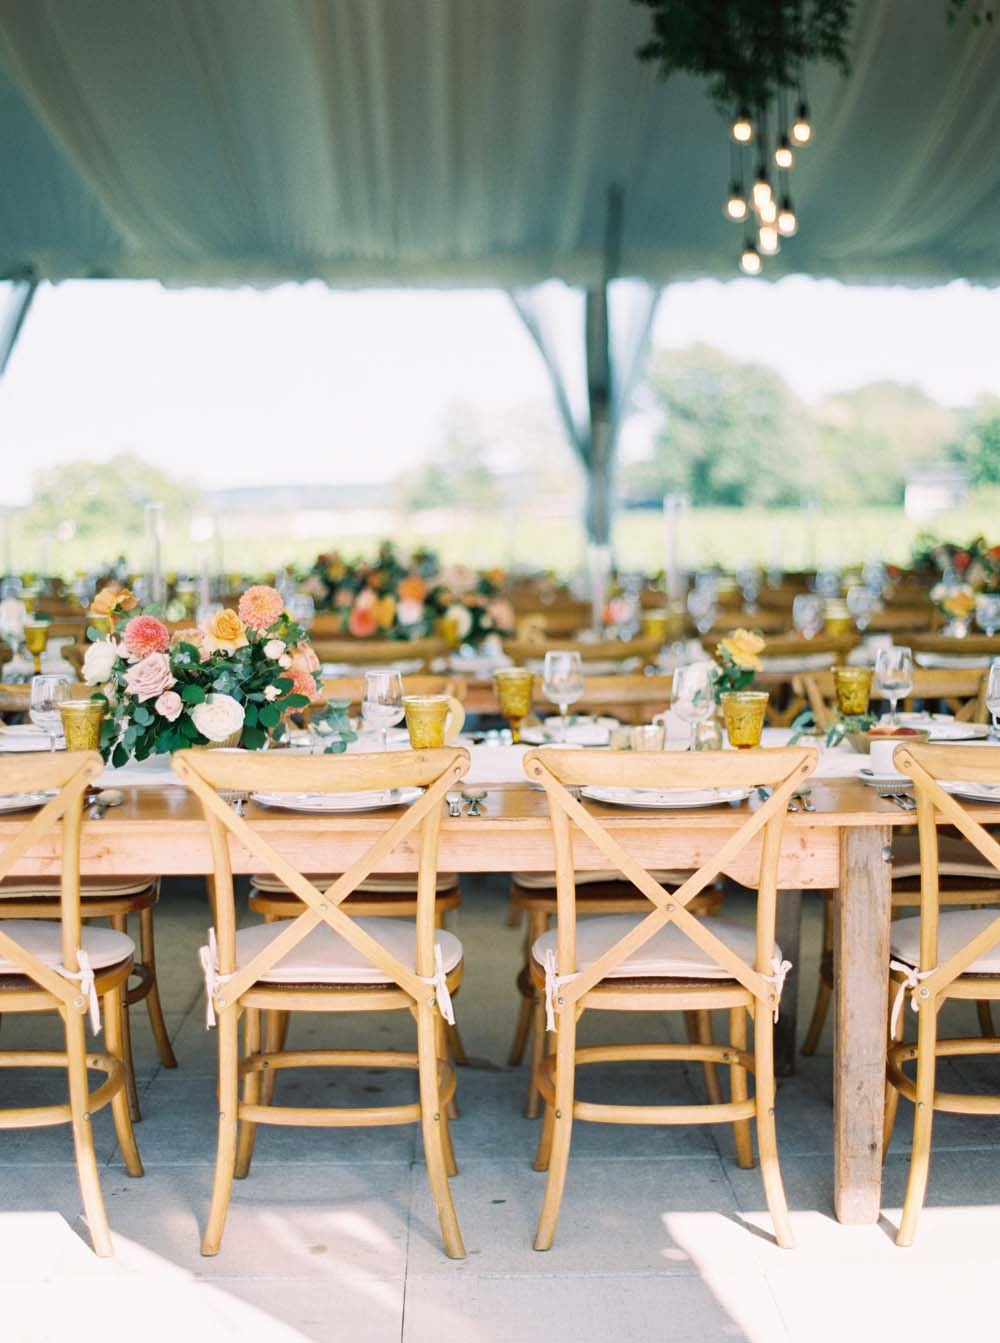 A Floral Peach Celebration in St. David's, Ontario - Seating